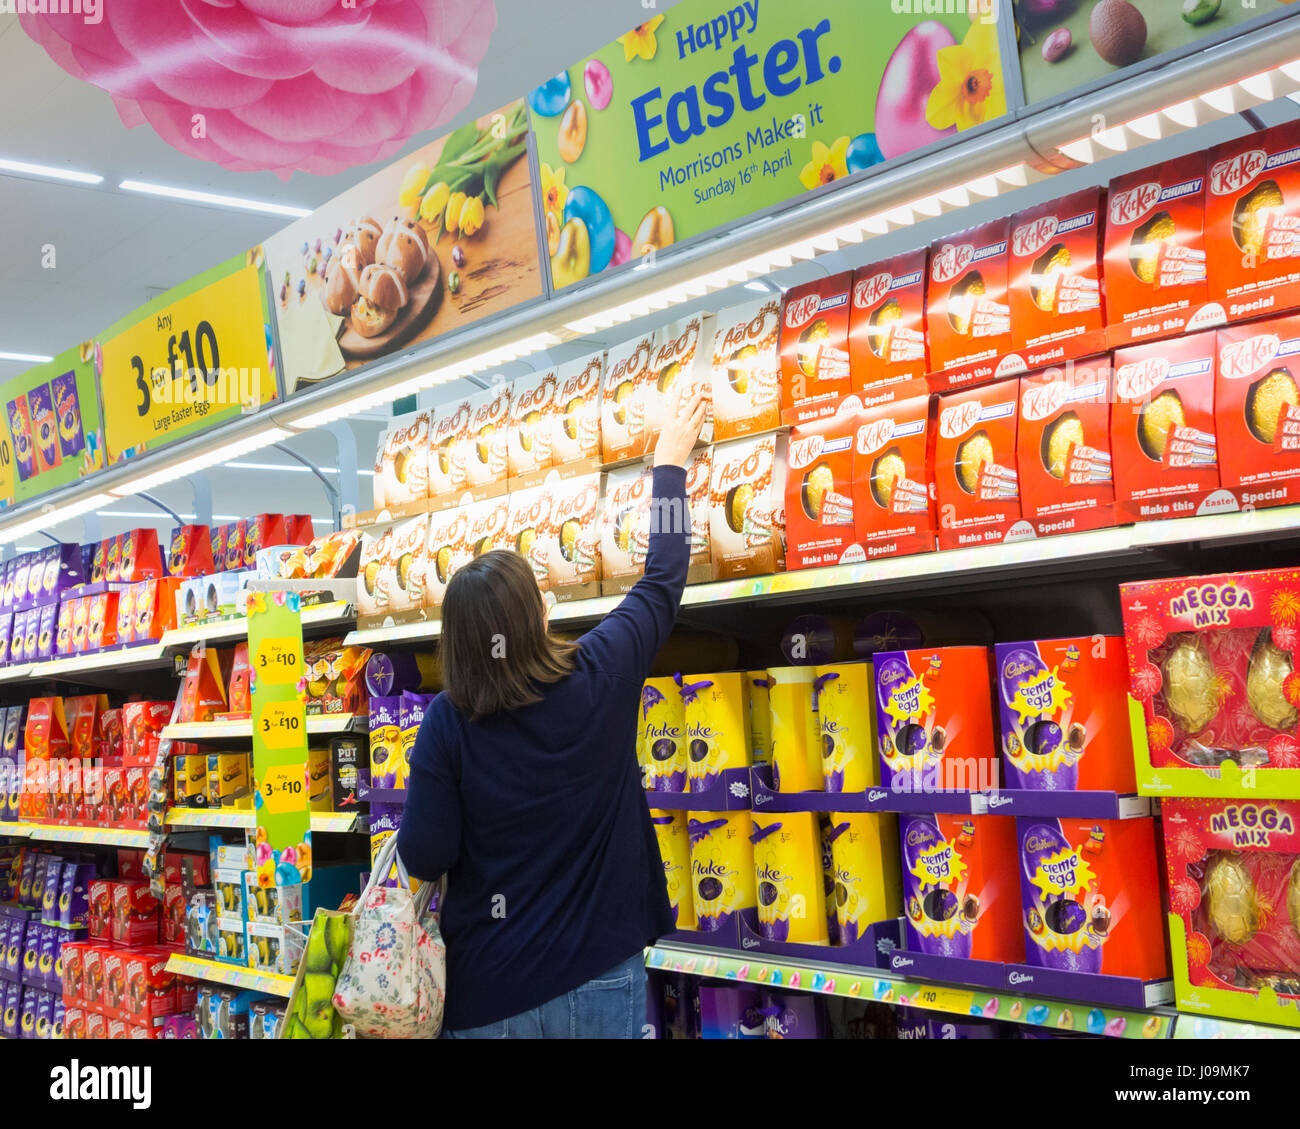 Easter eggs uk stock photos easter eggs uk stock images alamy morrisons supermarket uk woman buying easter eggs stock image negle